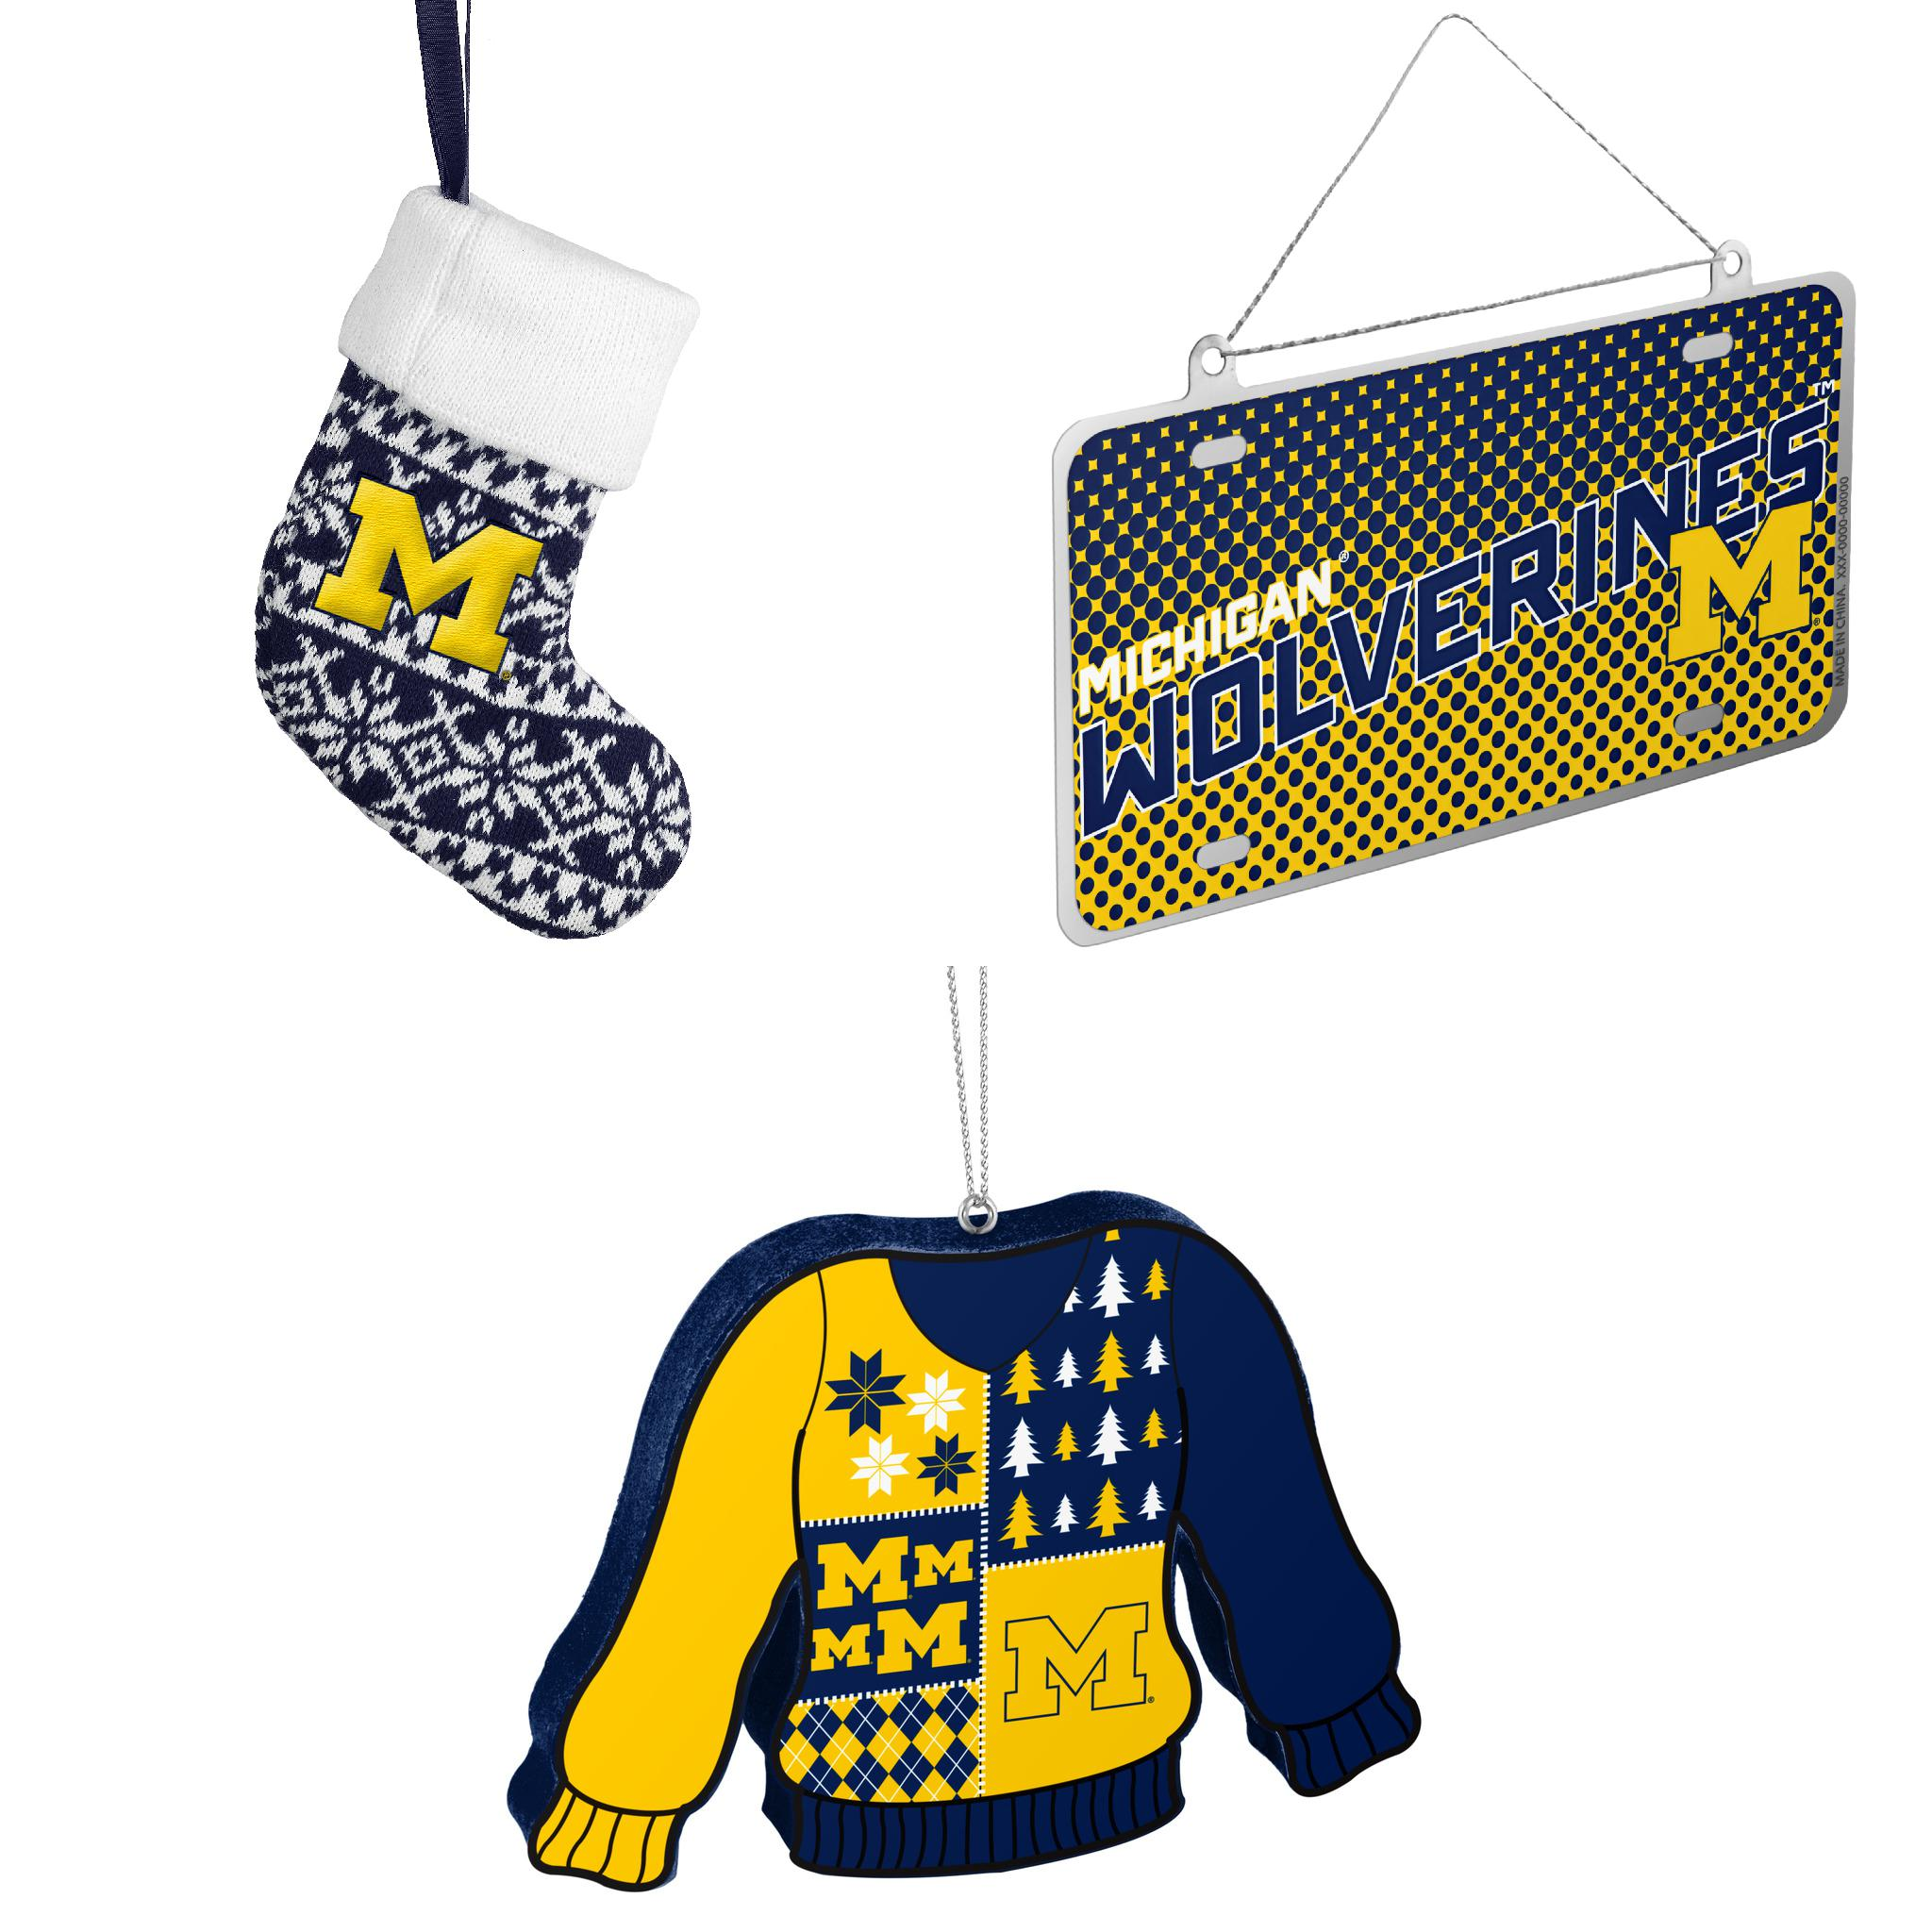 NCAA Michigan Wolverines ORNAMENT STOCKING KNIT Metal License Plate Christmas Ornament Foam Ugly Sweater Bundle 3 Pack By Forever Collectibles